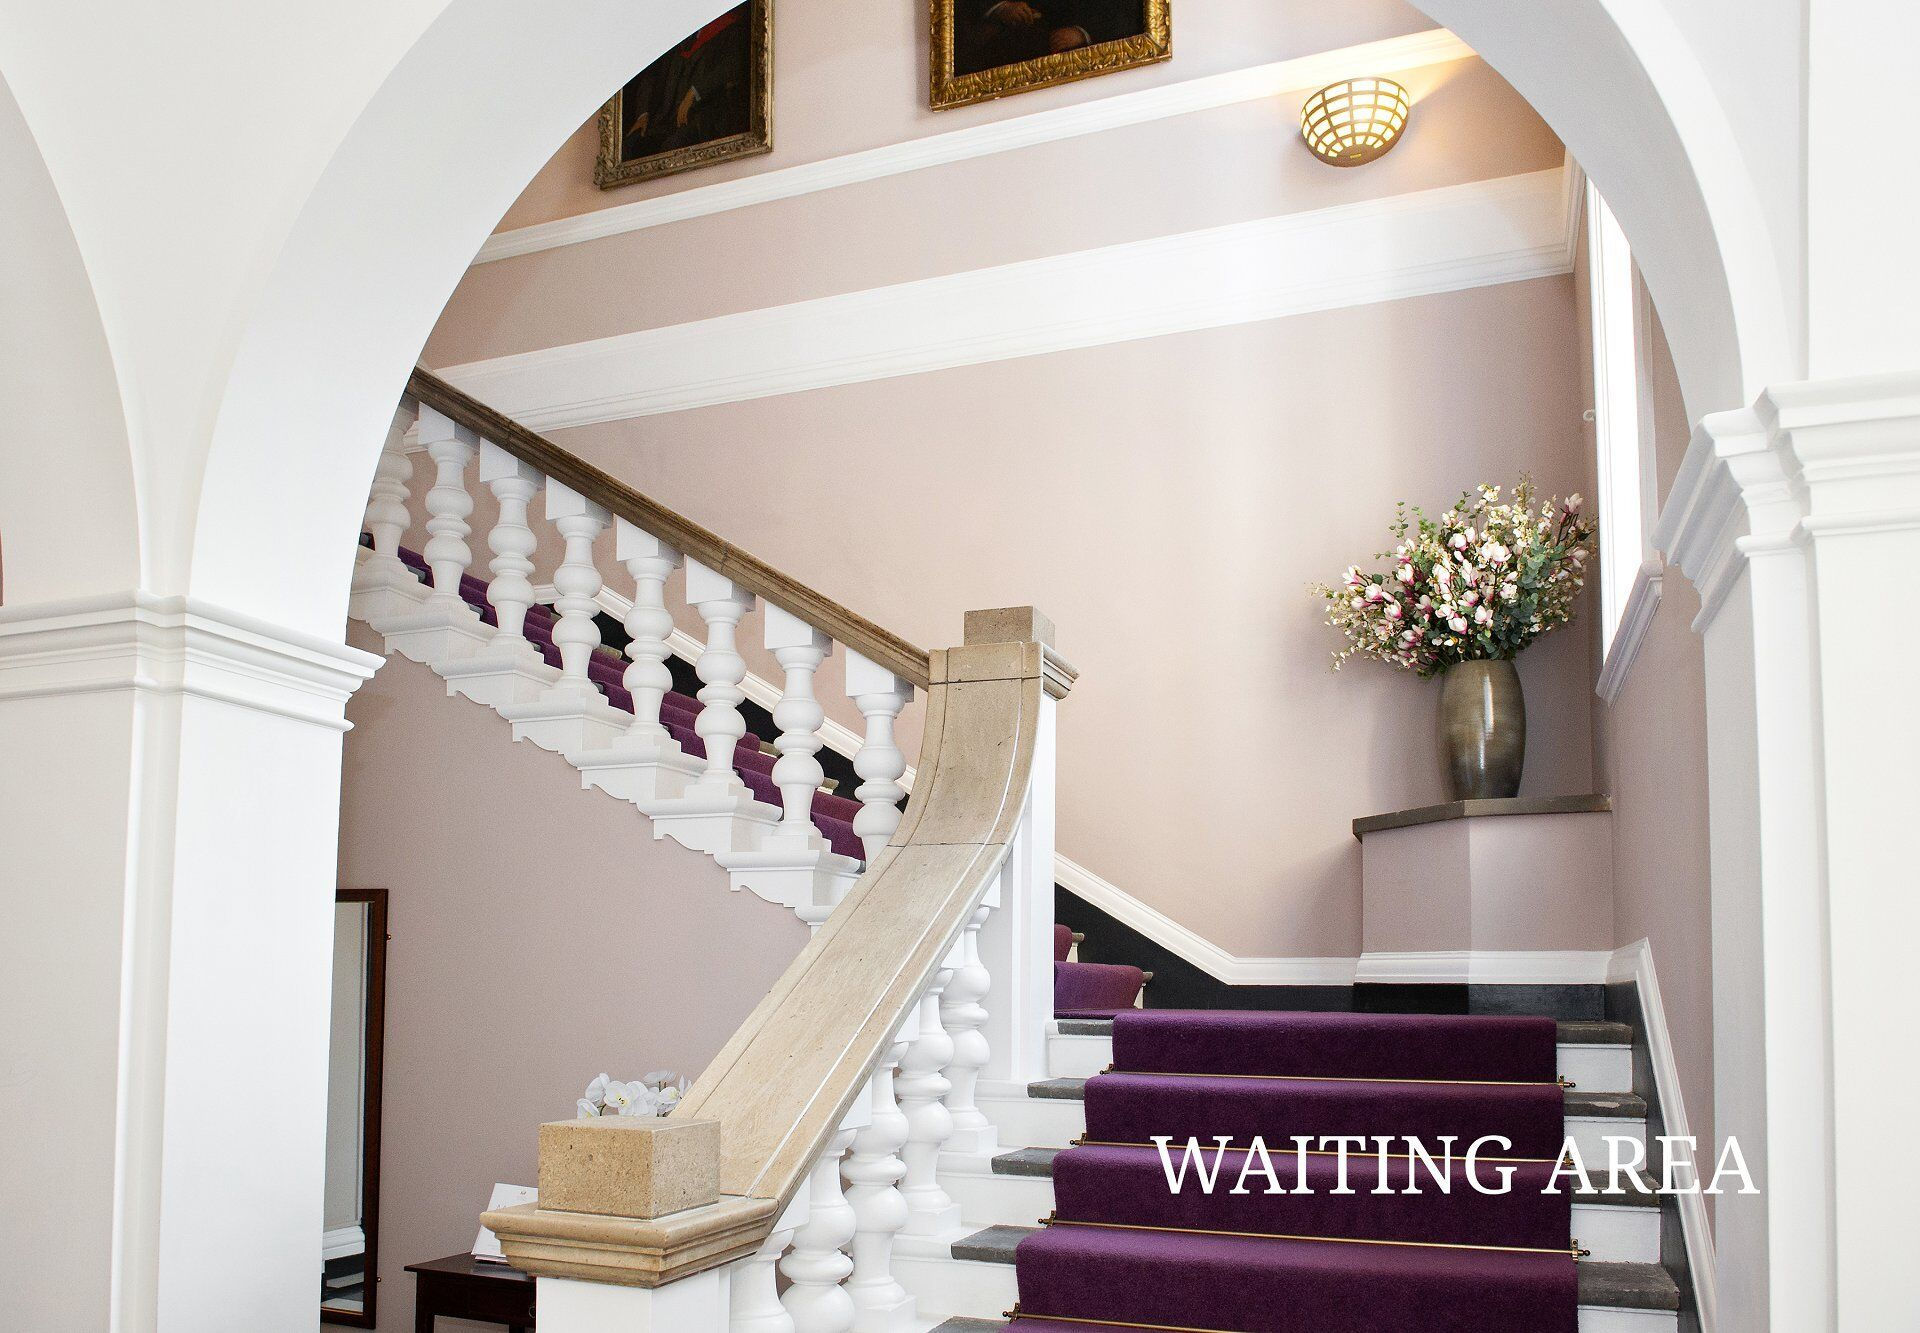 weddings and civil partnerships waiting area staircase leading to citizenship waiting area and ceremonies